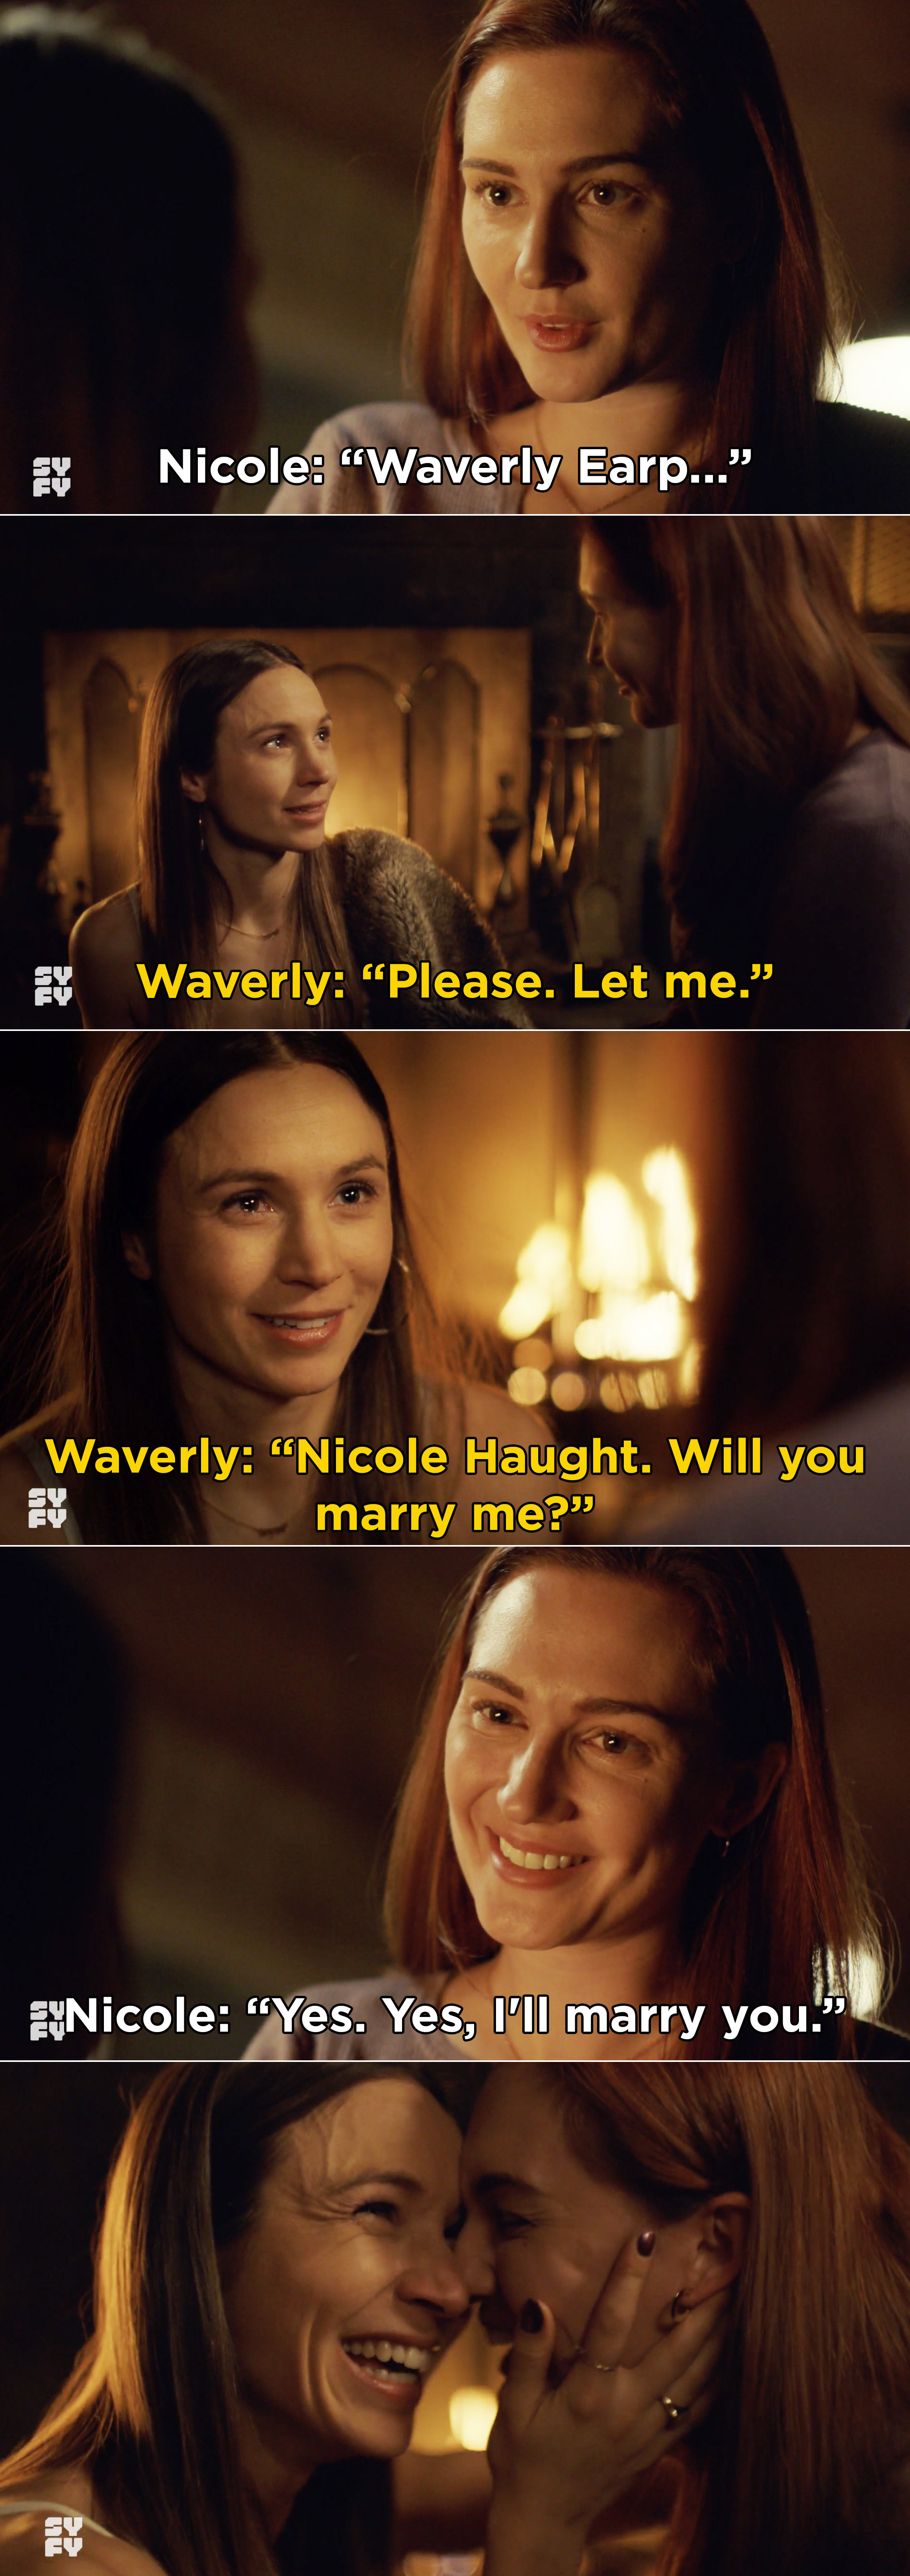 Nicole starting to propose, but Waverly interrupting and proposing instead